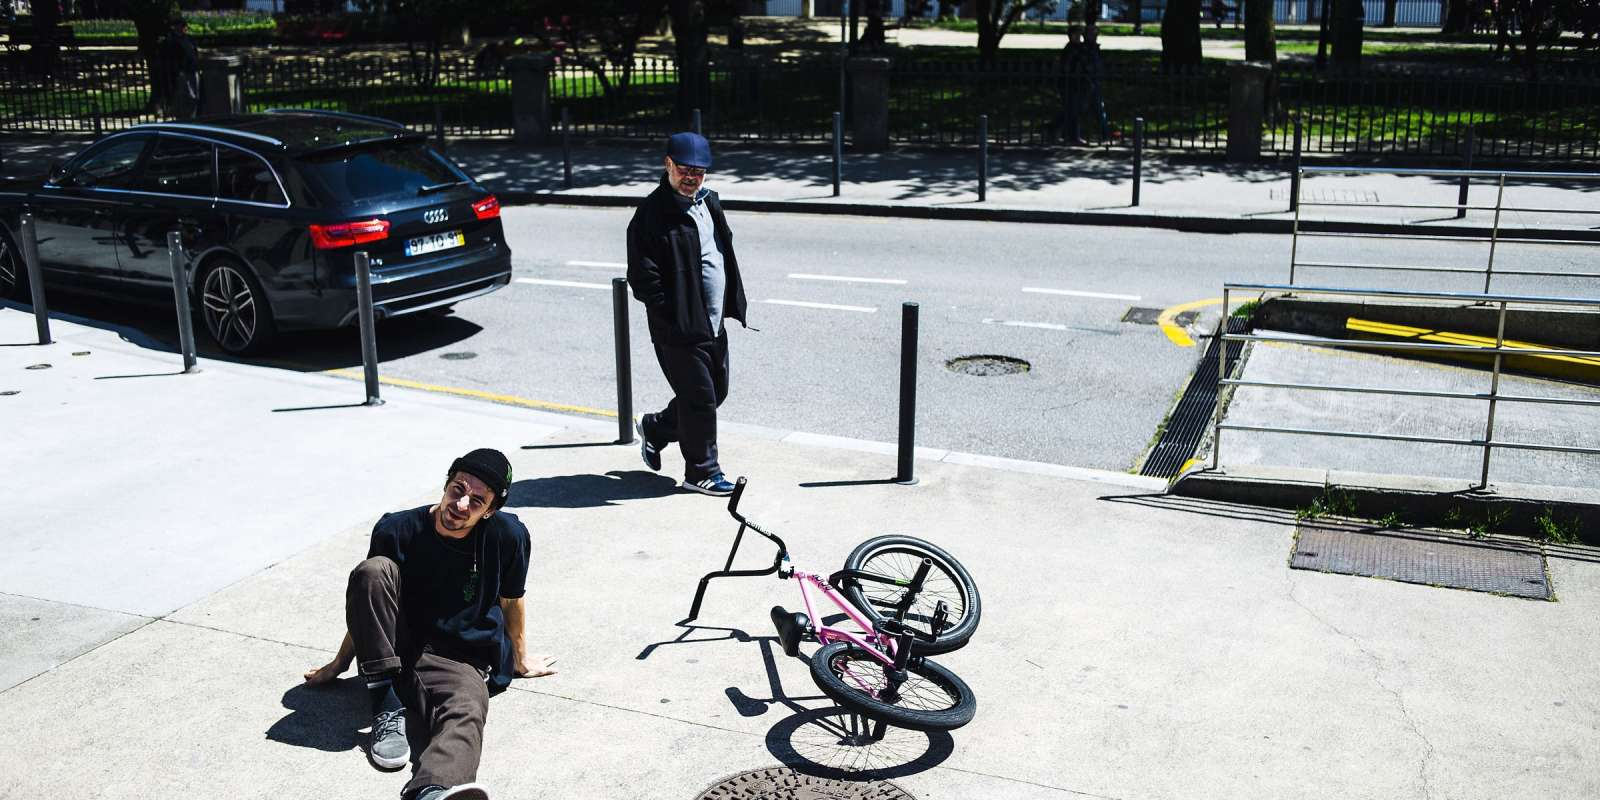 Lost in BMX series, new episode taking place in Porto, Portugal